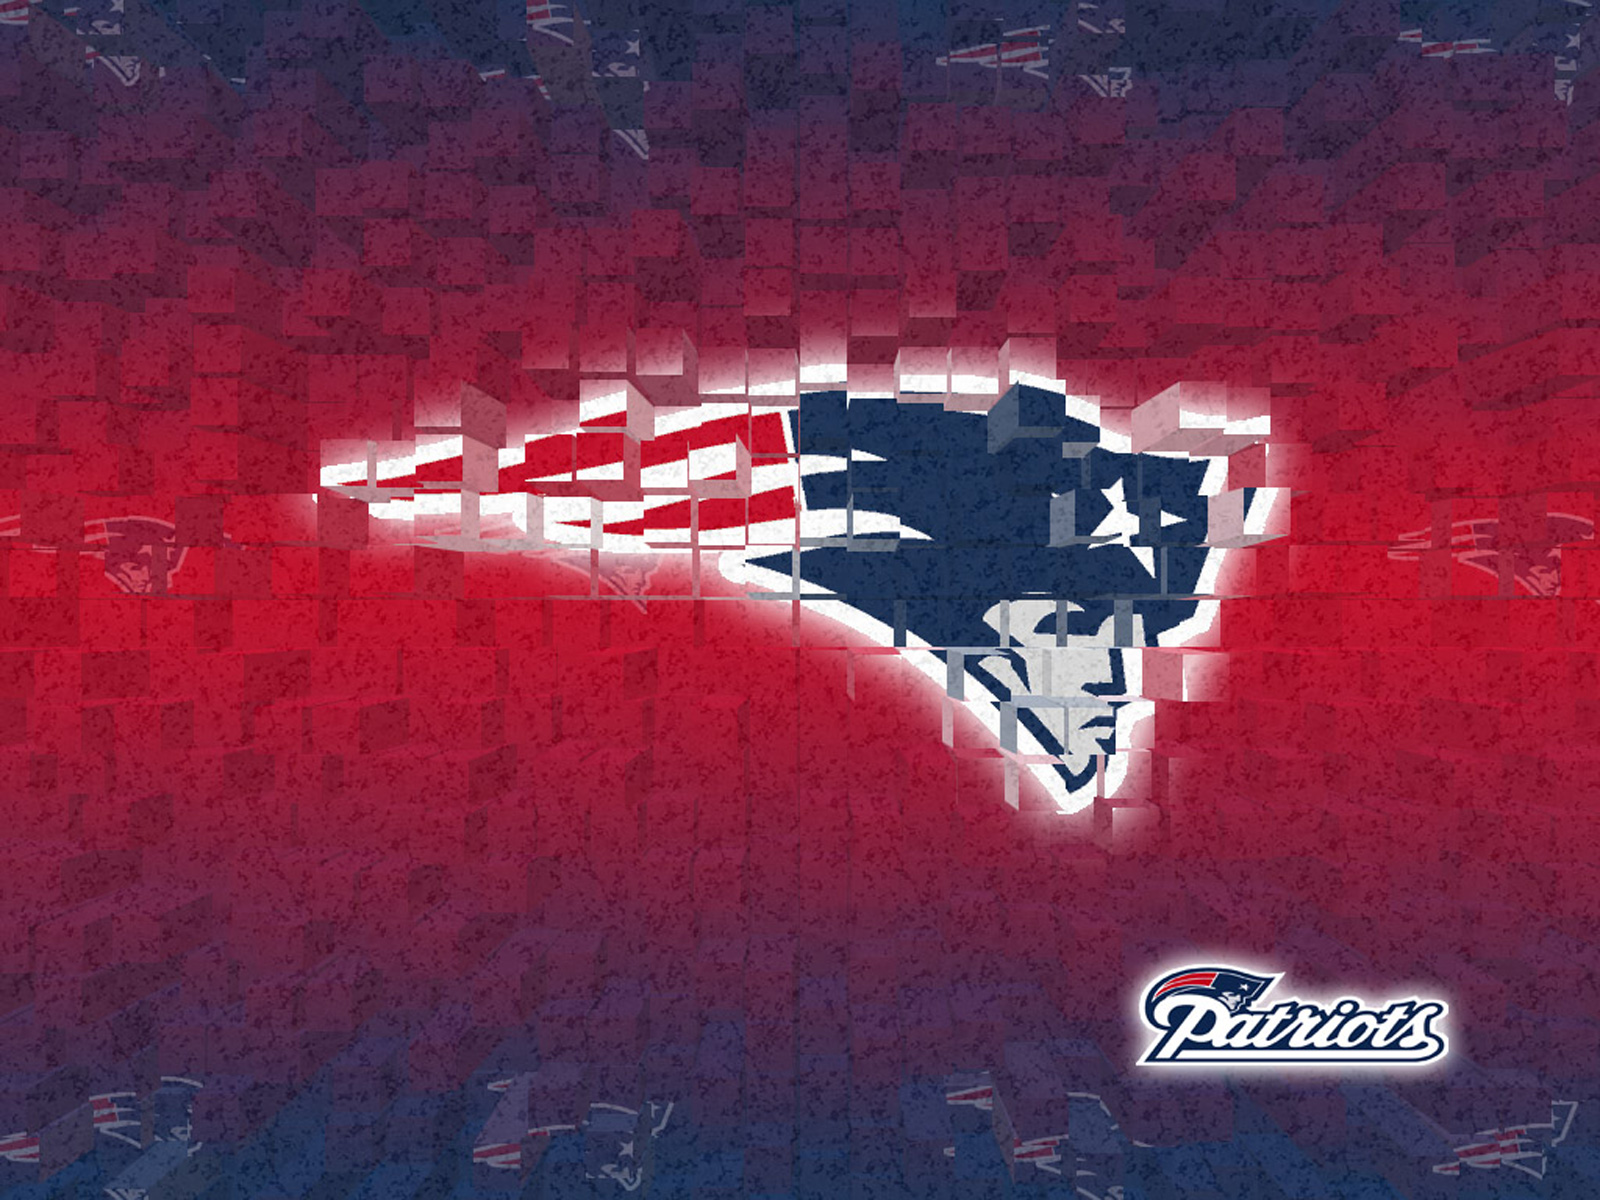 New England Patriots Wallpaper 5532 1600x1200 px